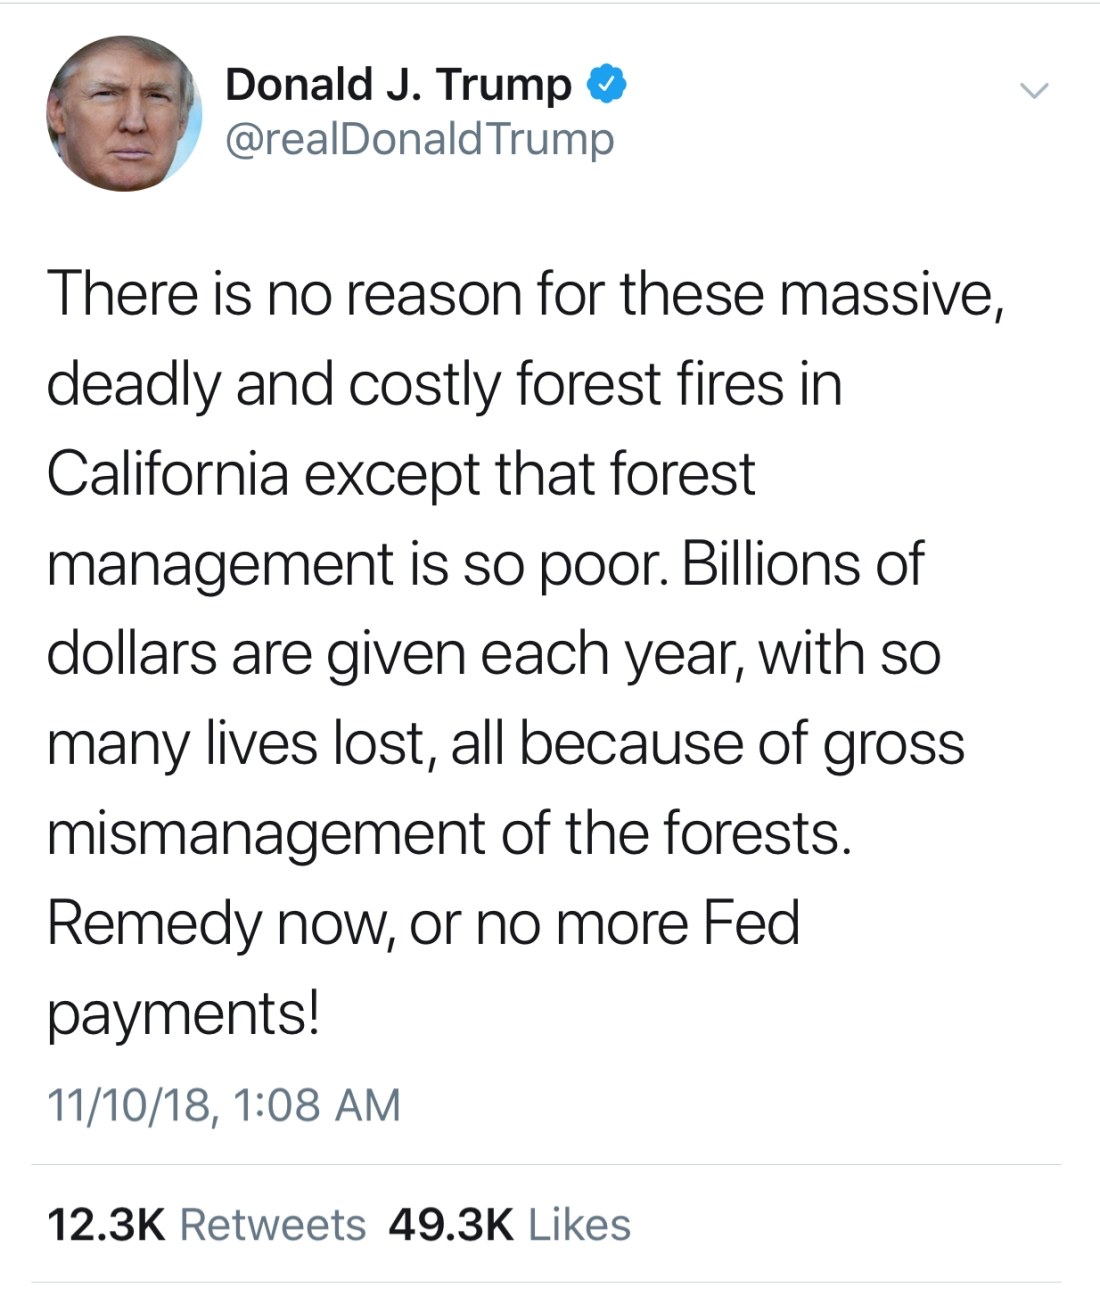 Trump Fire Tweet